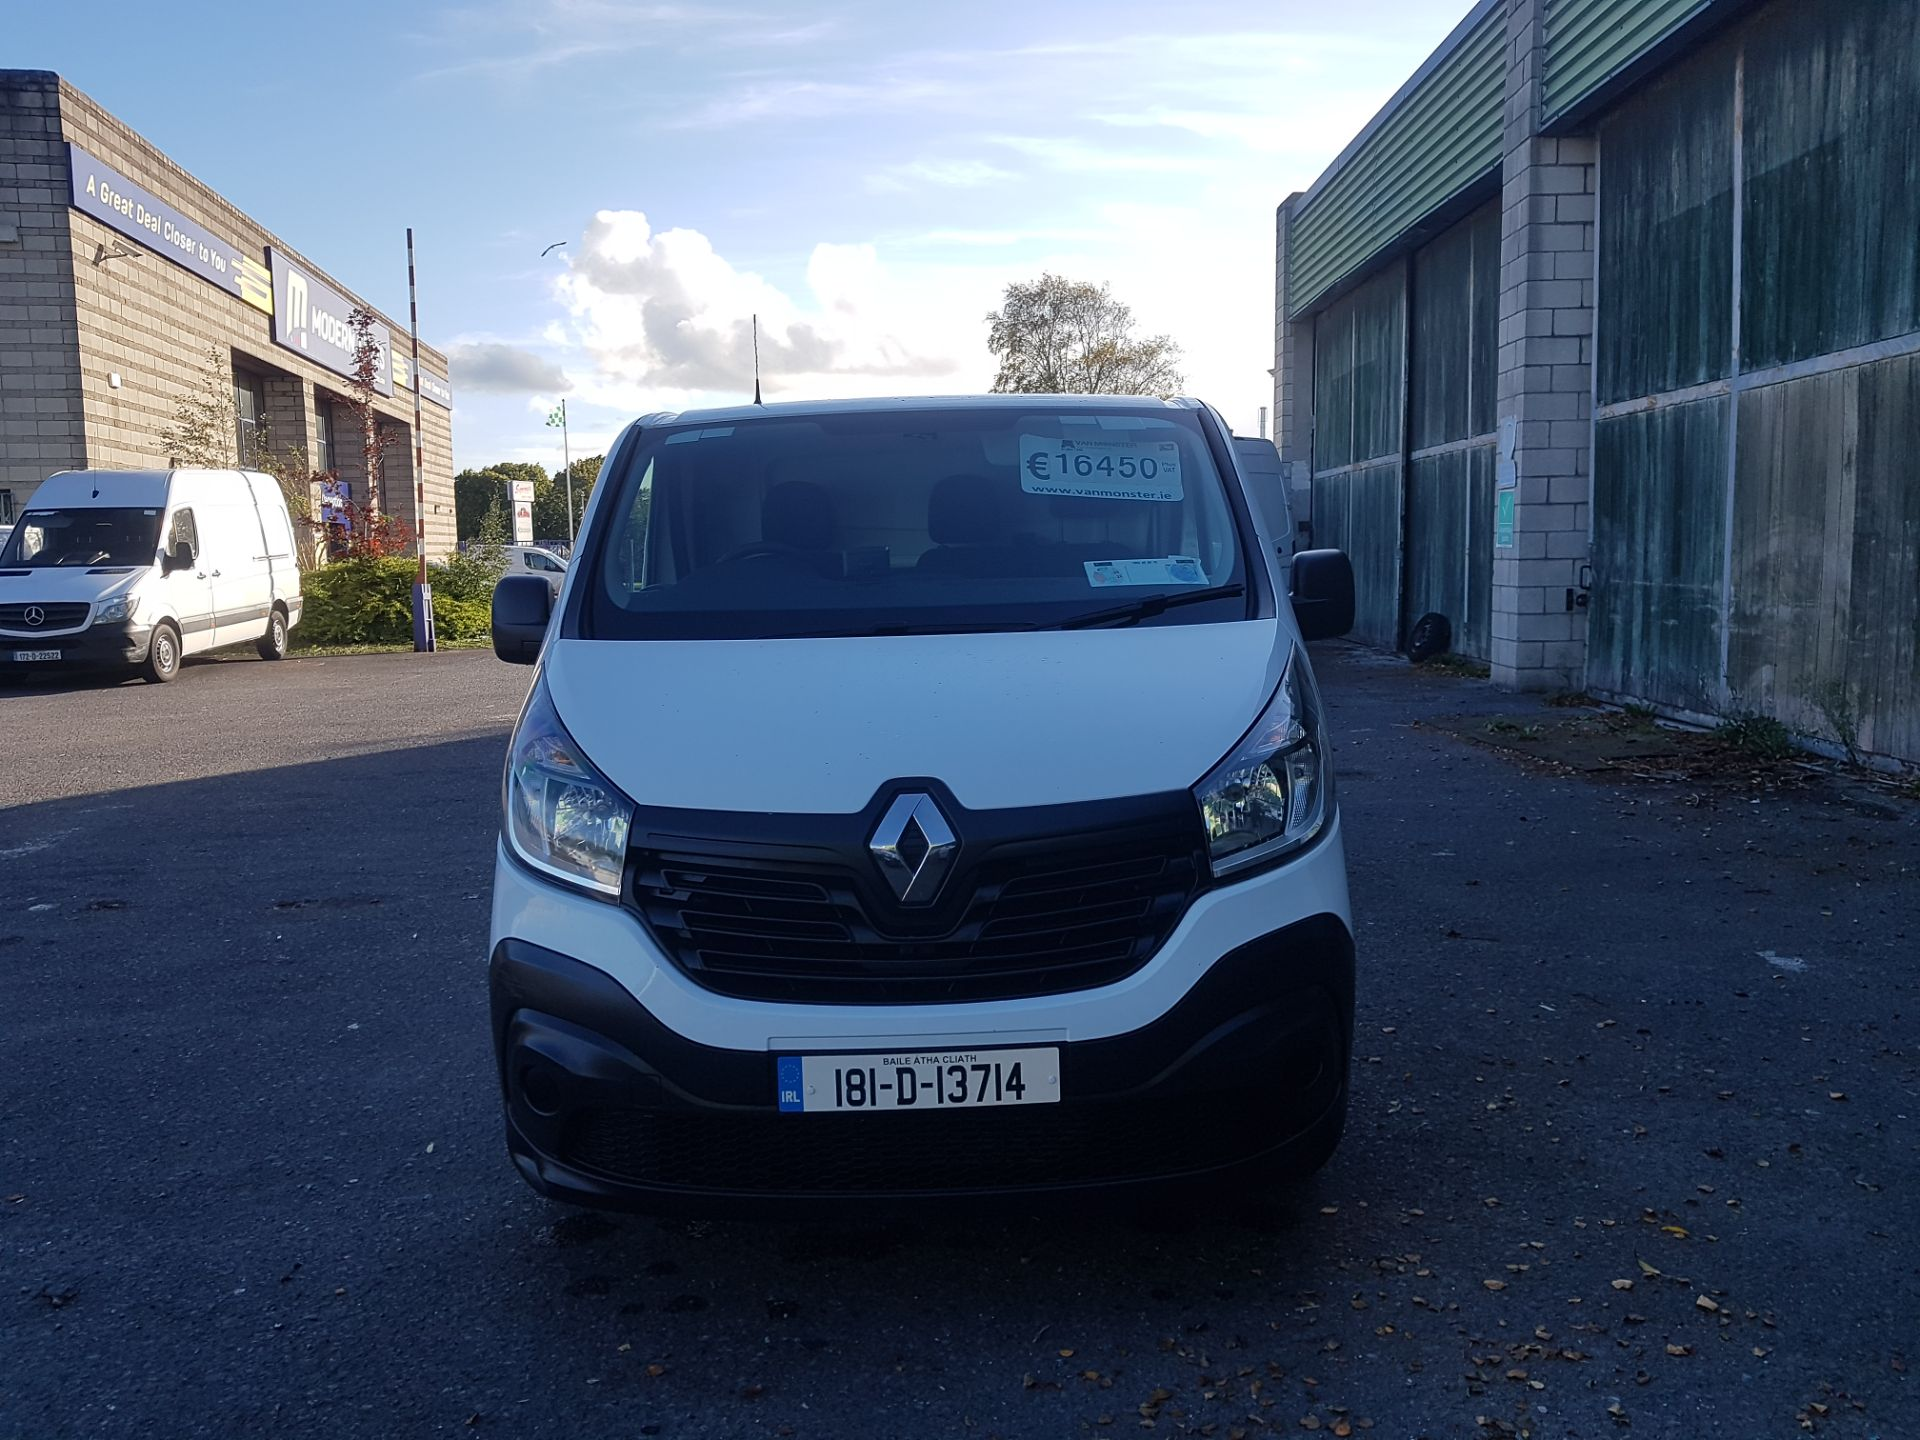 2018 Renault Trafic LL29 DCI 120 Business 3DR (181D13714) Image 8